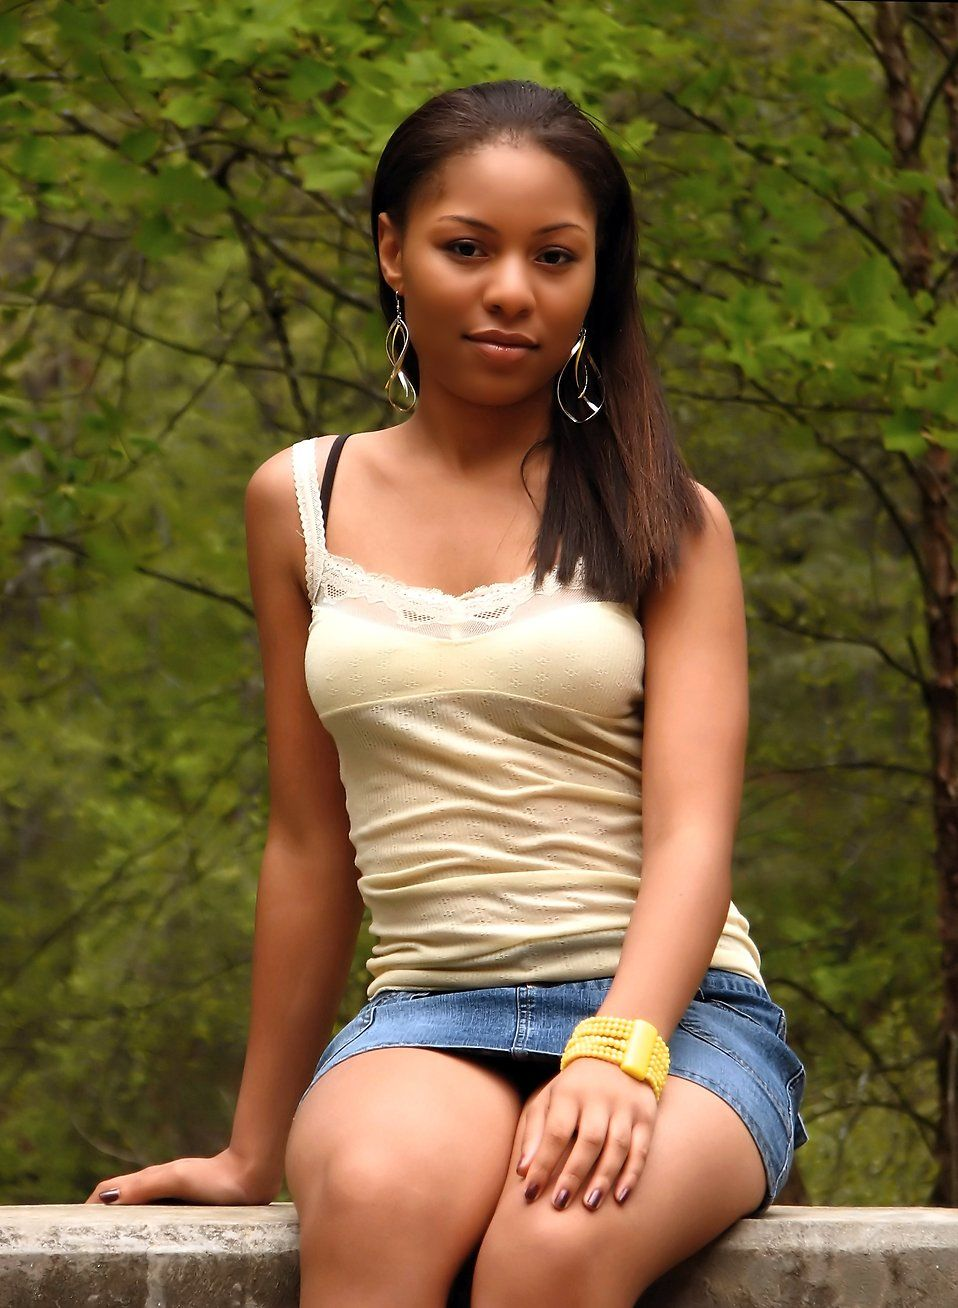 Nude virgin of ebony teen with